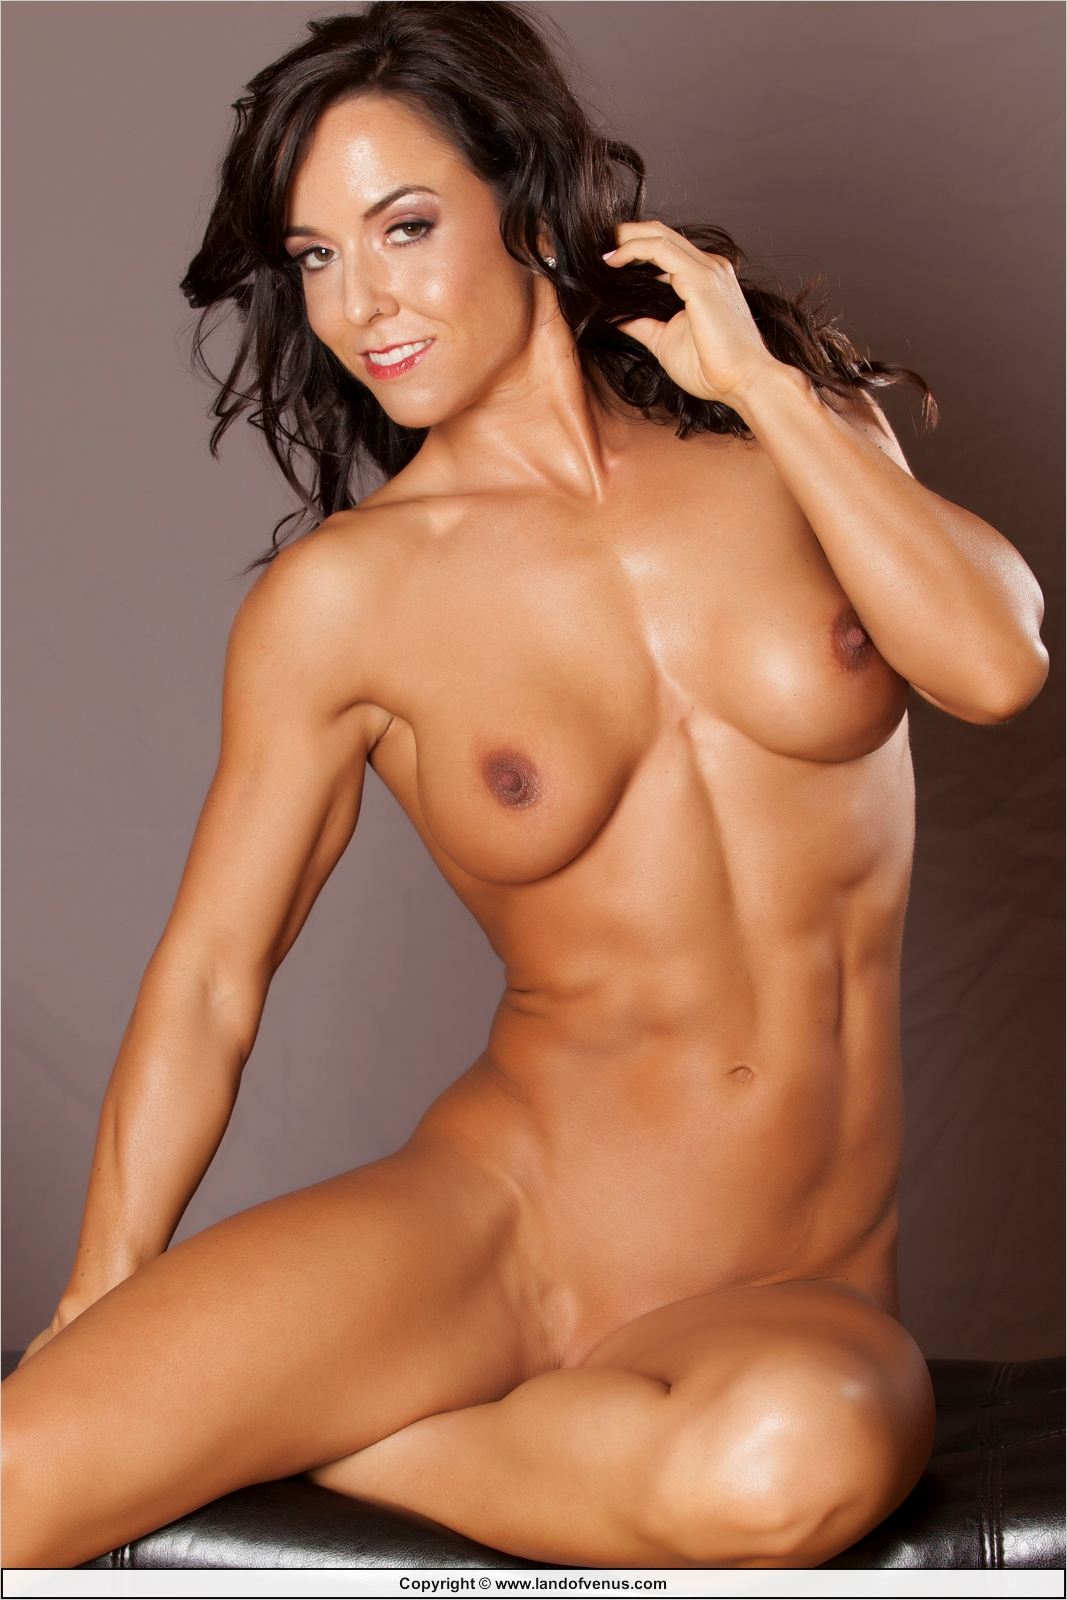 Women muscle nude pussy photo pity